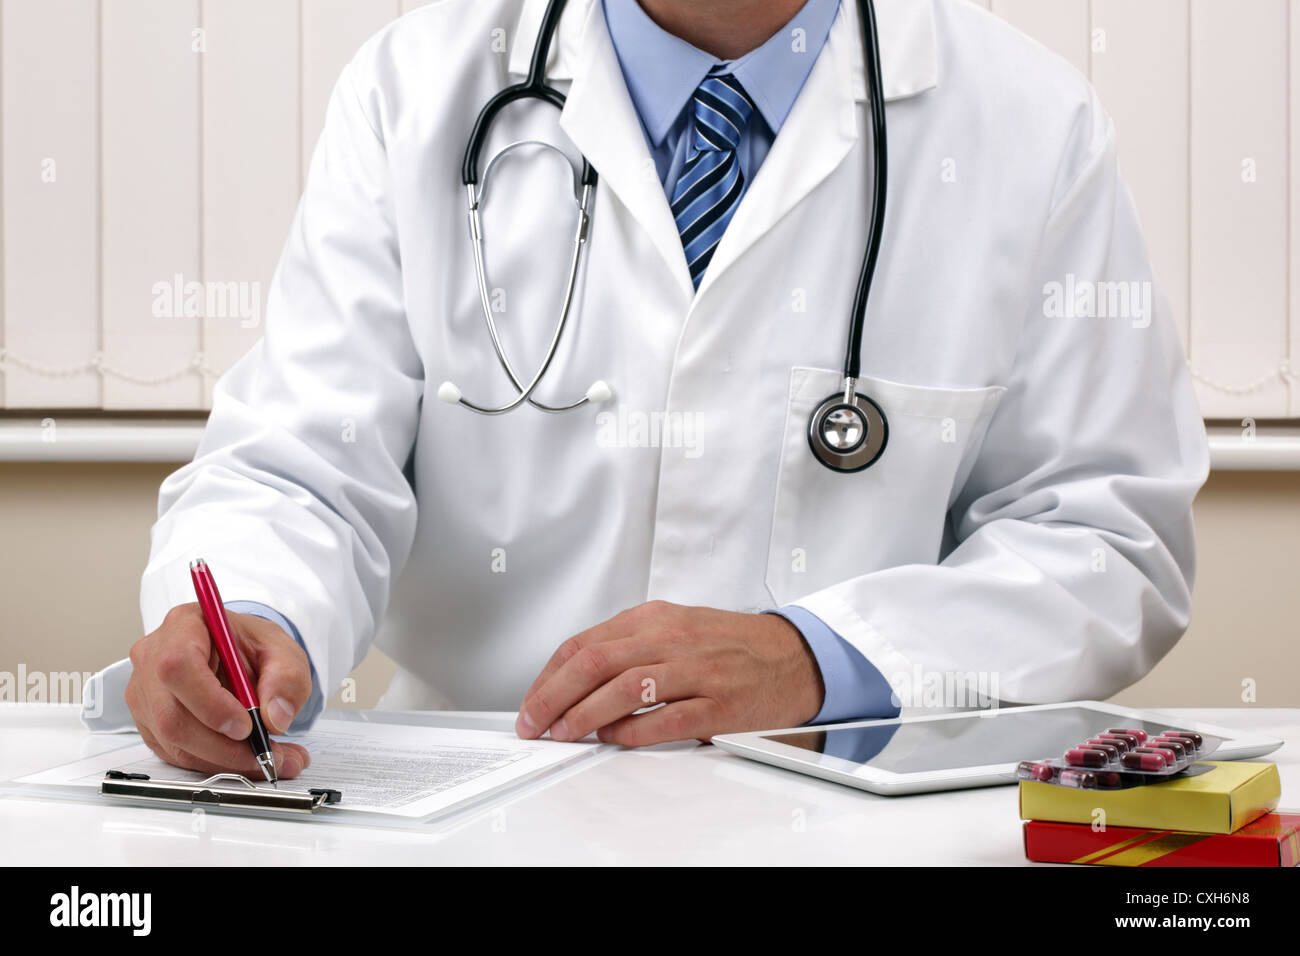 L'écriture d'un médecin ou sur ordonnance notes examen médical Photo Stock